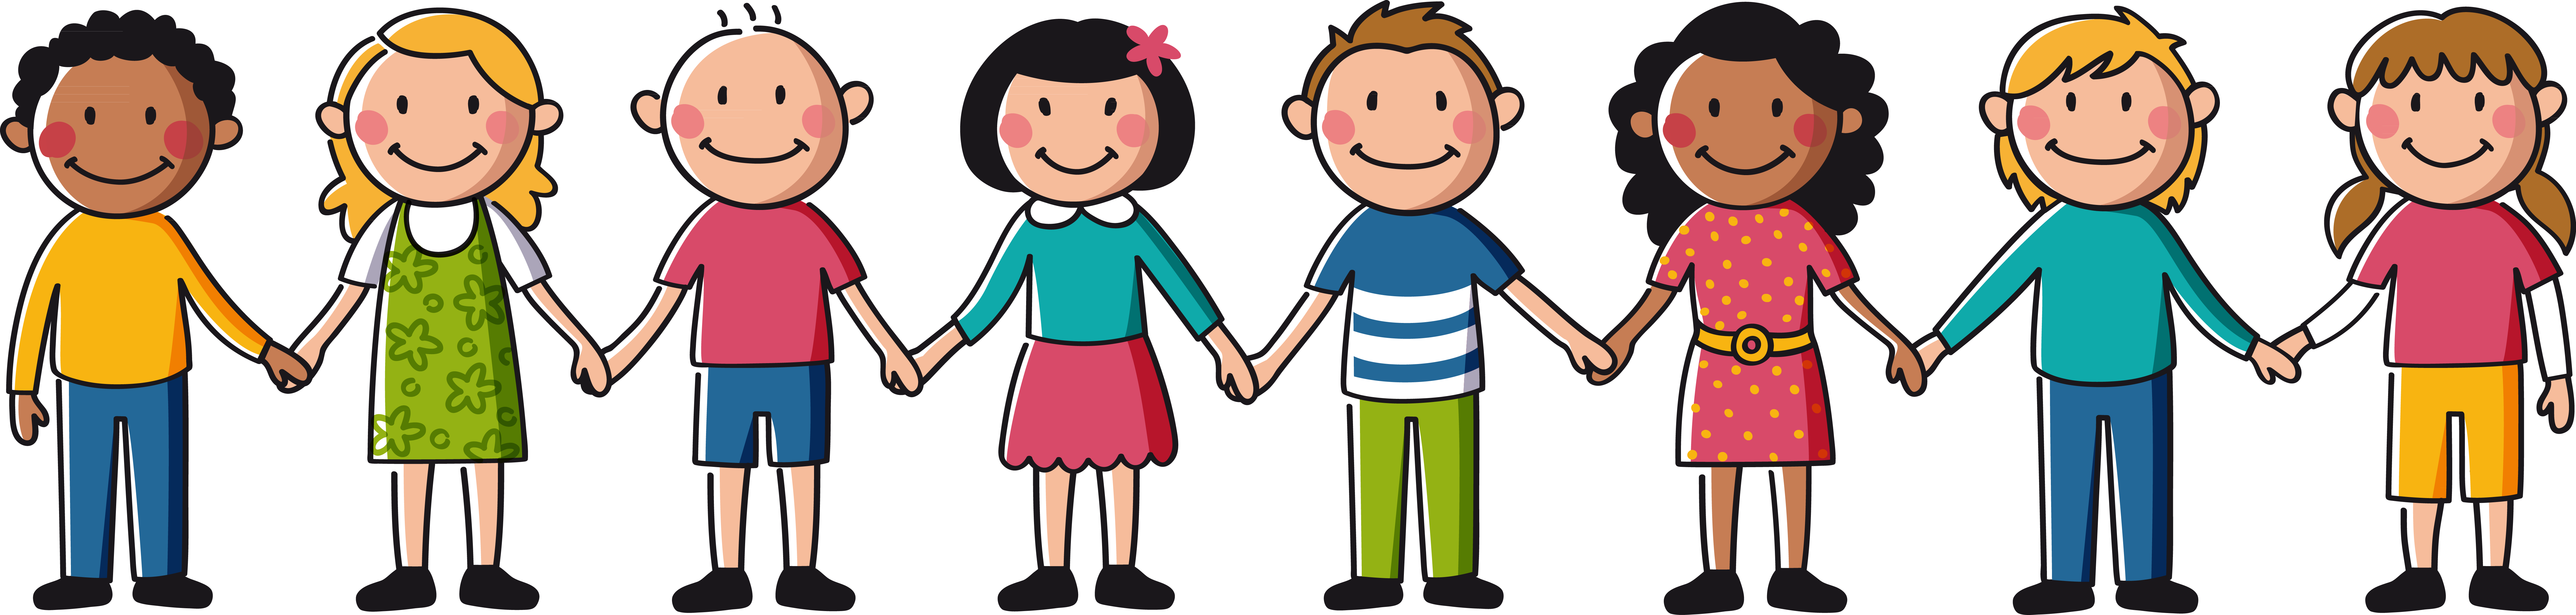 Banner Freeuse Friends Holding Hands Clipart - Kids Holding Hands Clipart (9158x2188), Png Download